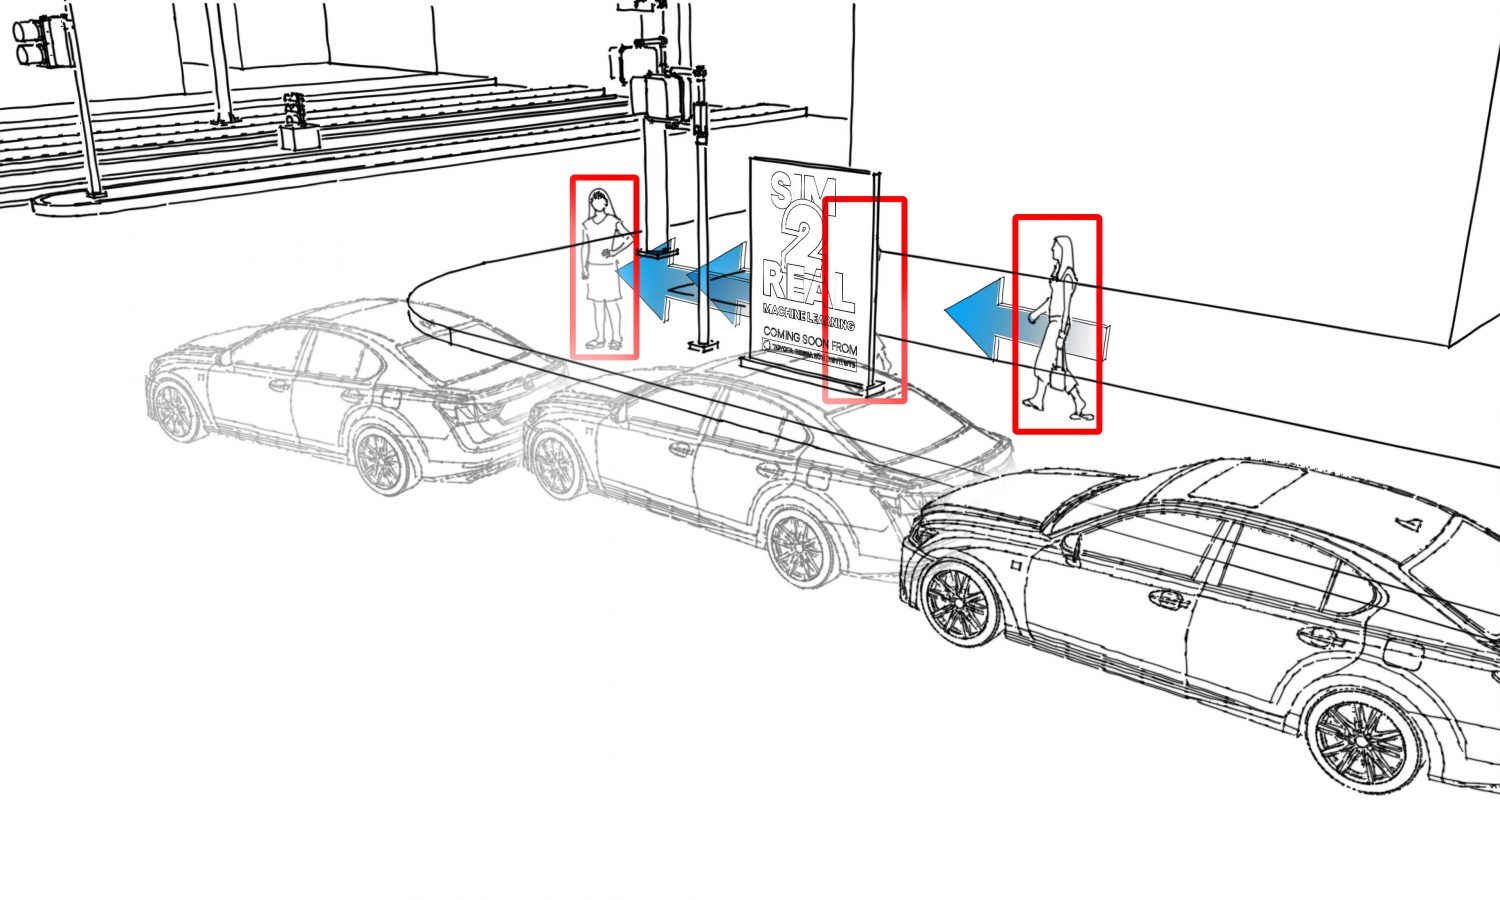 Toyota Research Institute Announces Machine Learning Advances at the International Conference on Computer Vision